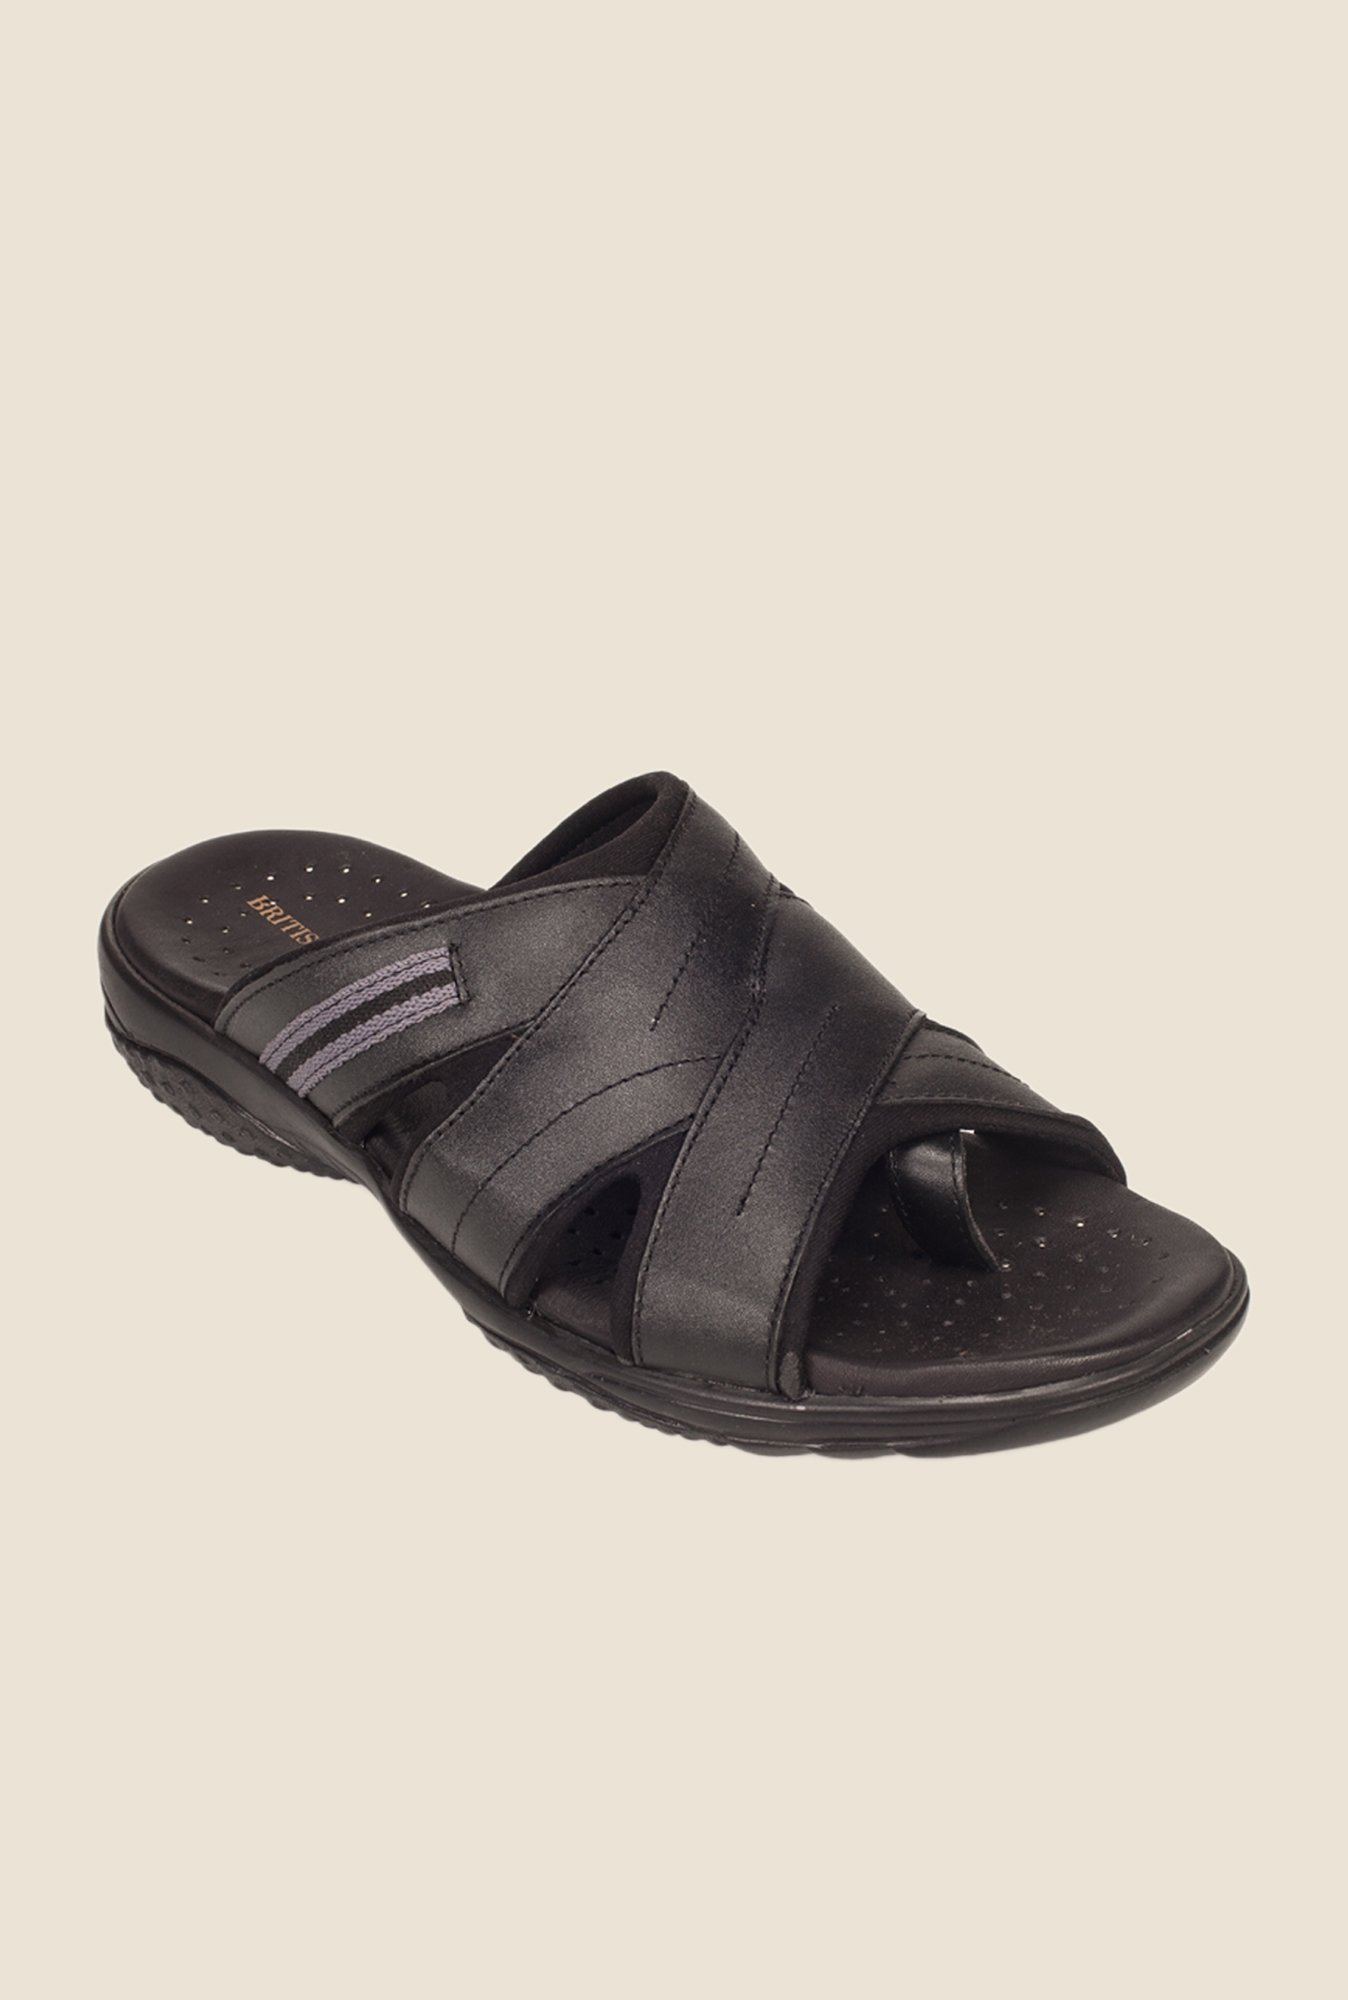 Khadim's British Walkers Black Thong Sandals